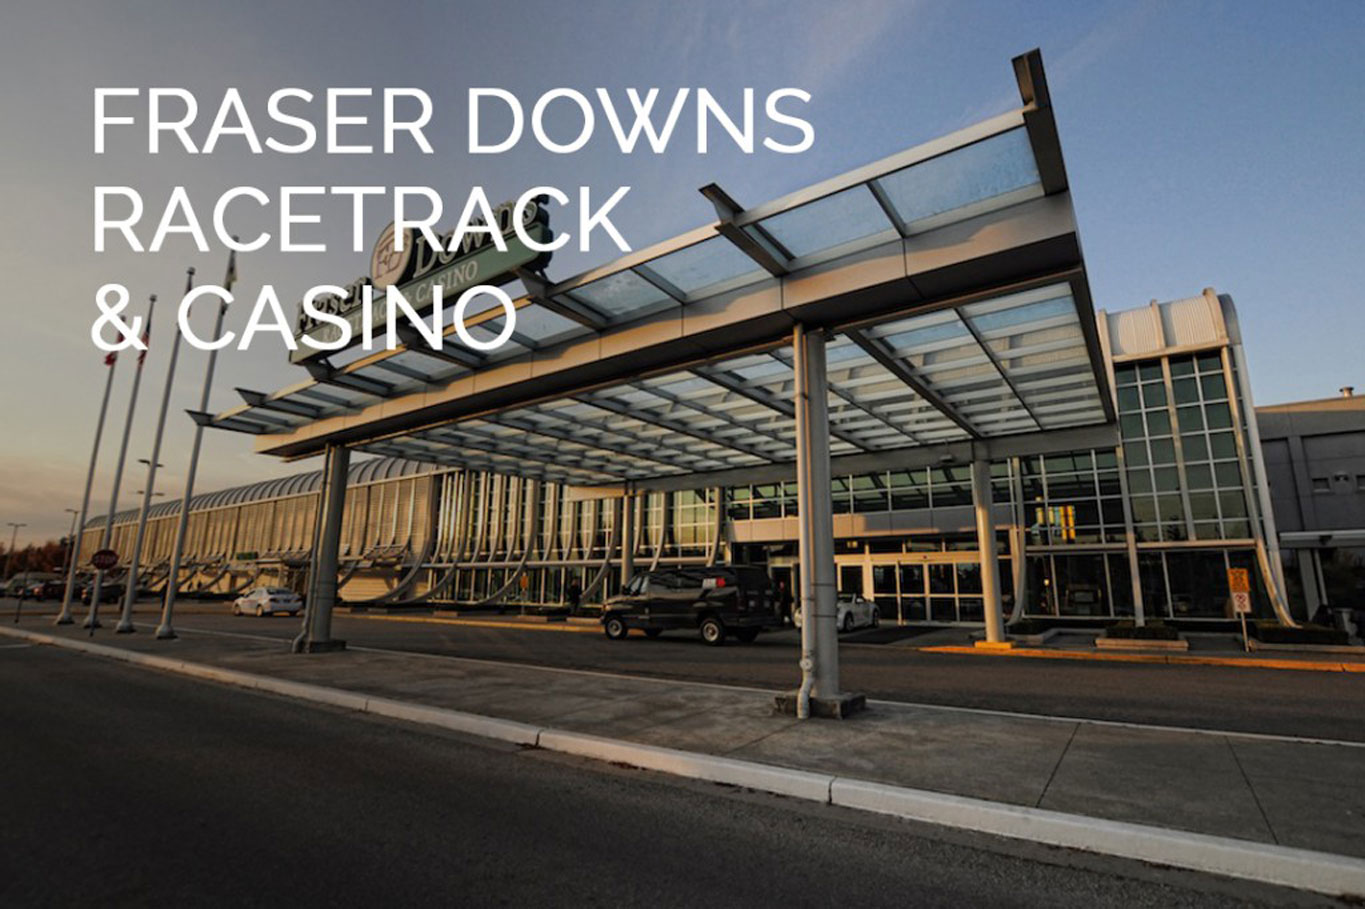 fraser downs racetrack and casino essay